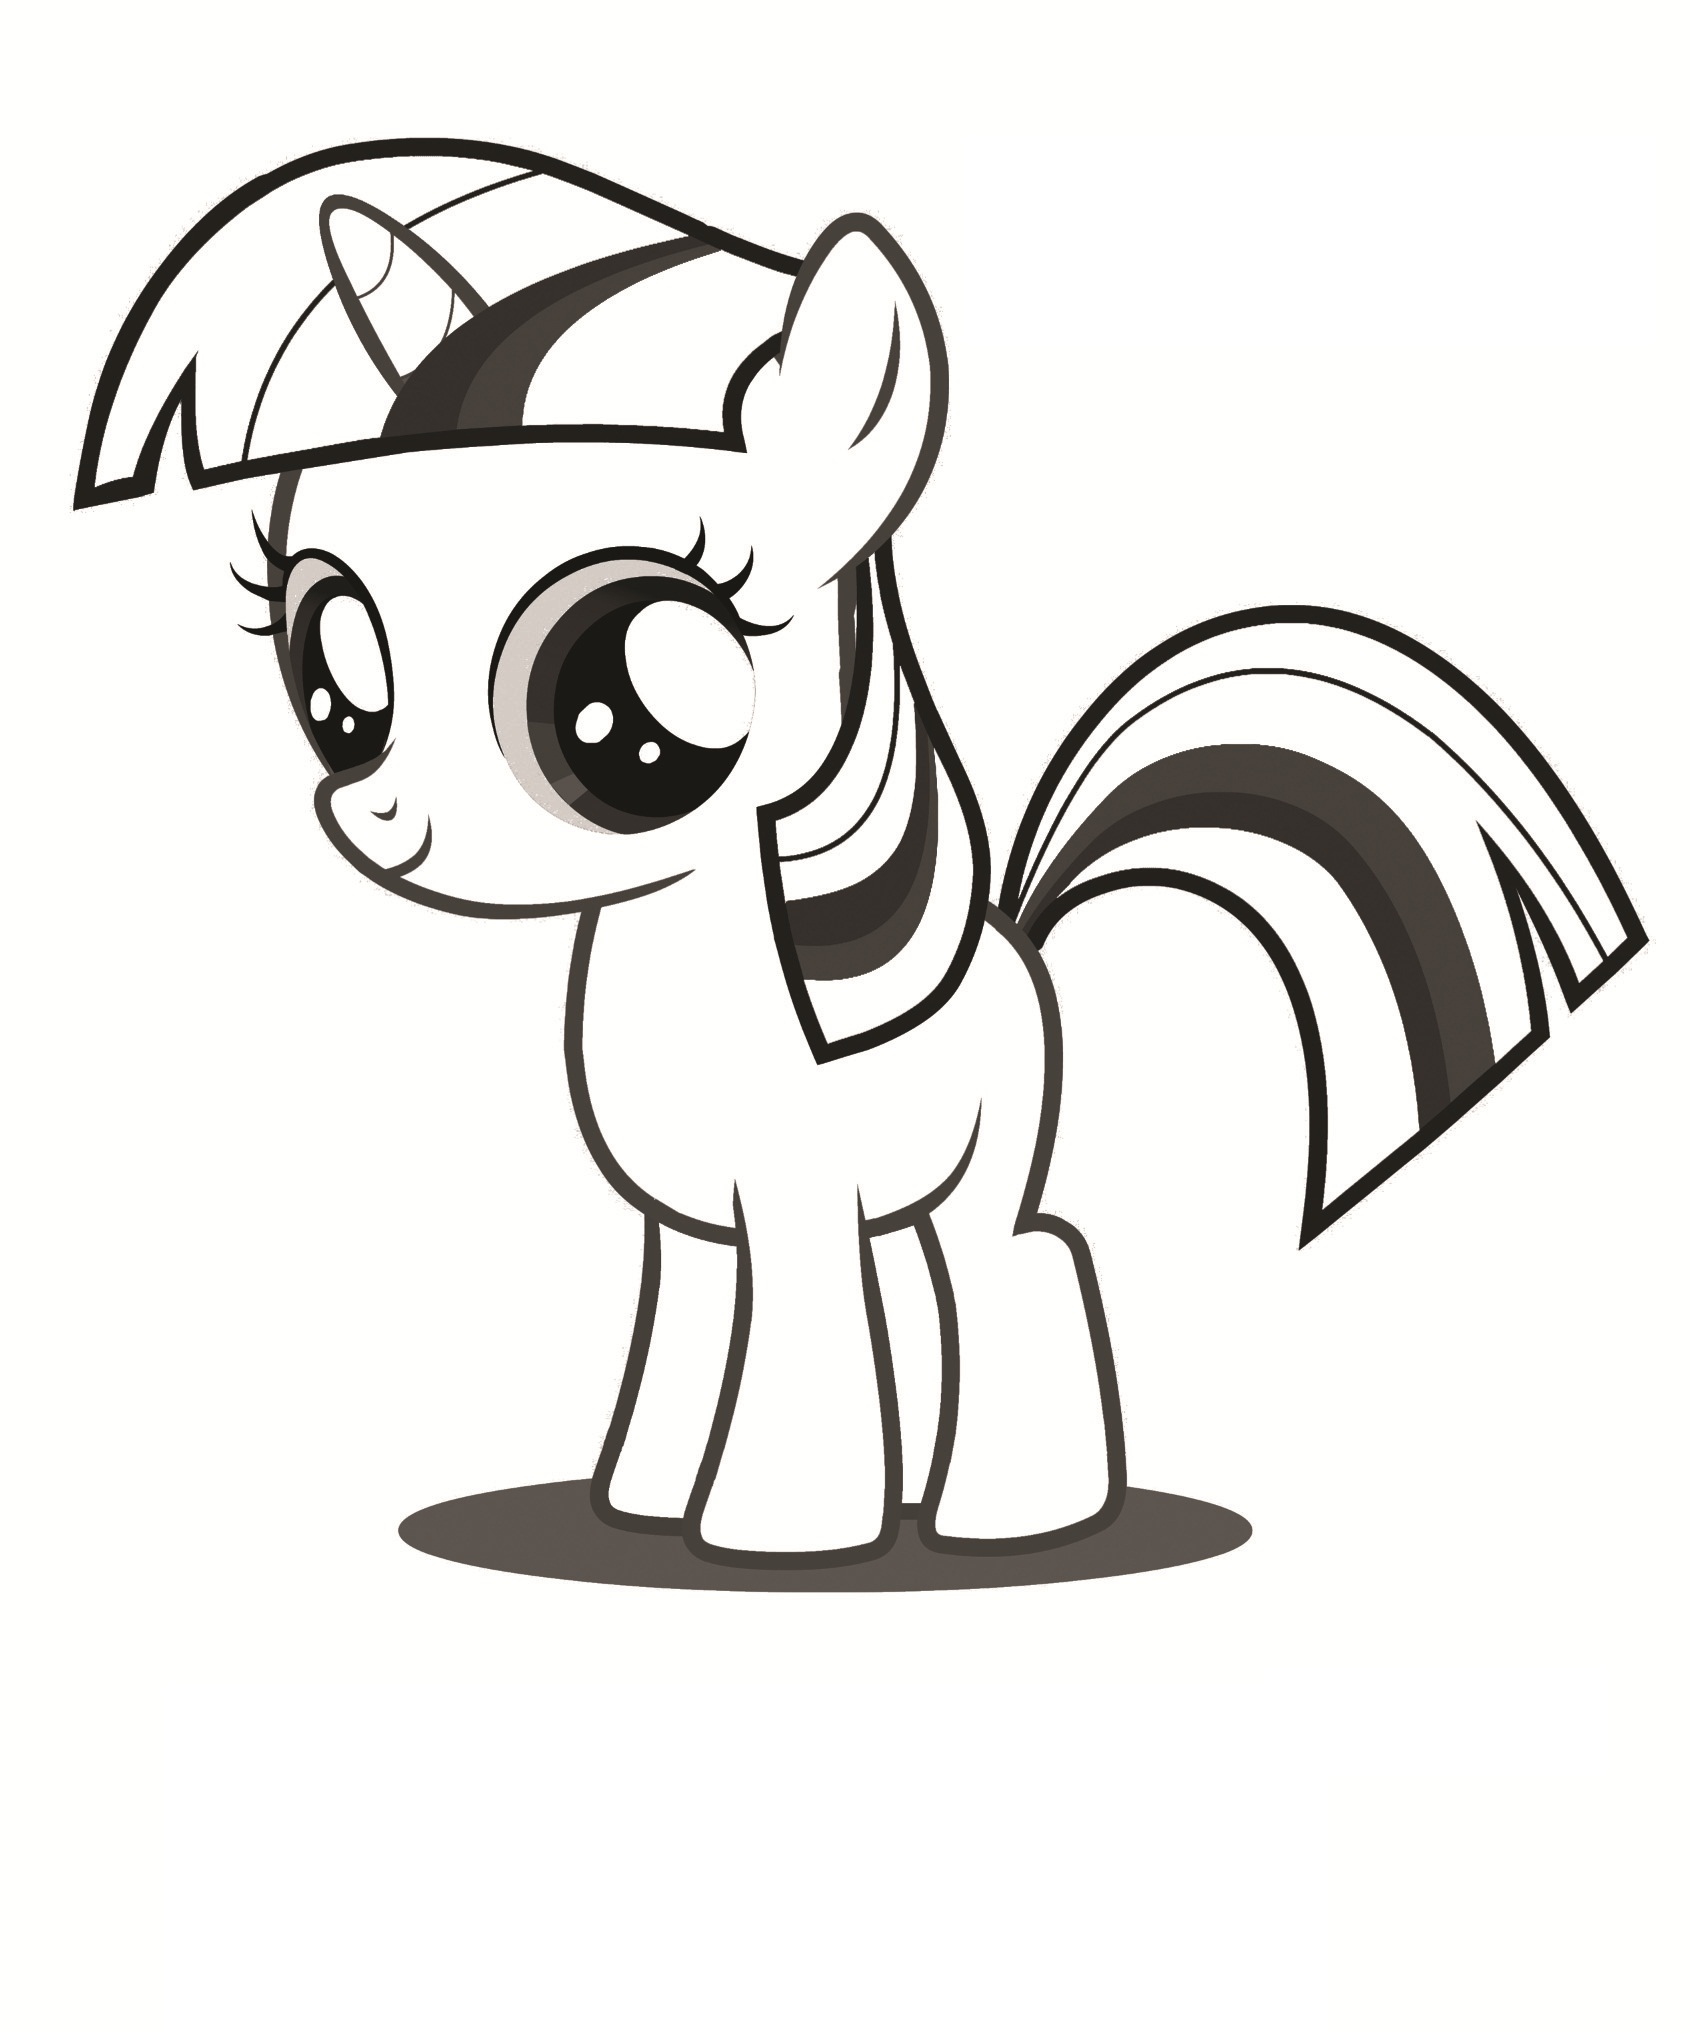 my little pony free coloring pages - Coloring Pictures Free